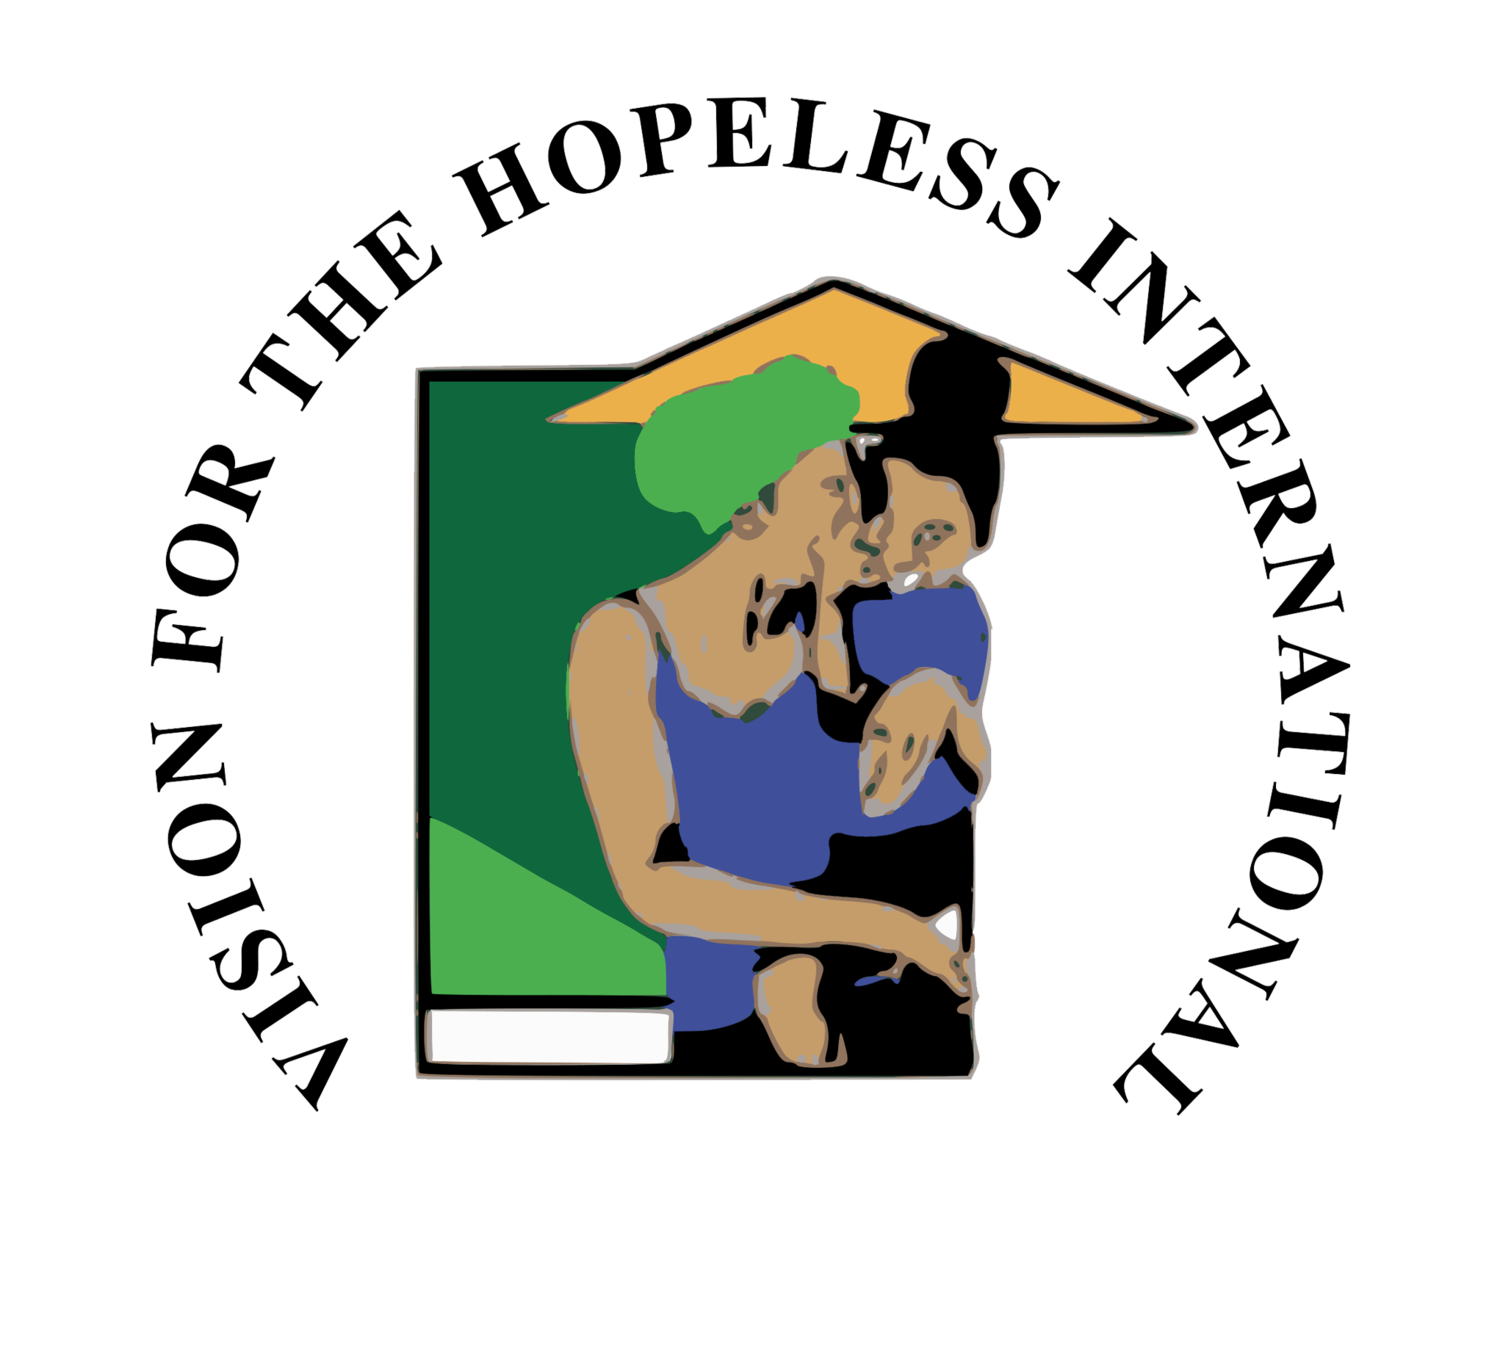 Vision for the Hopeless International